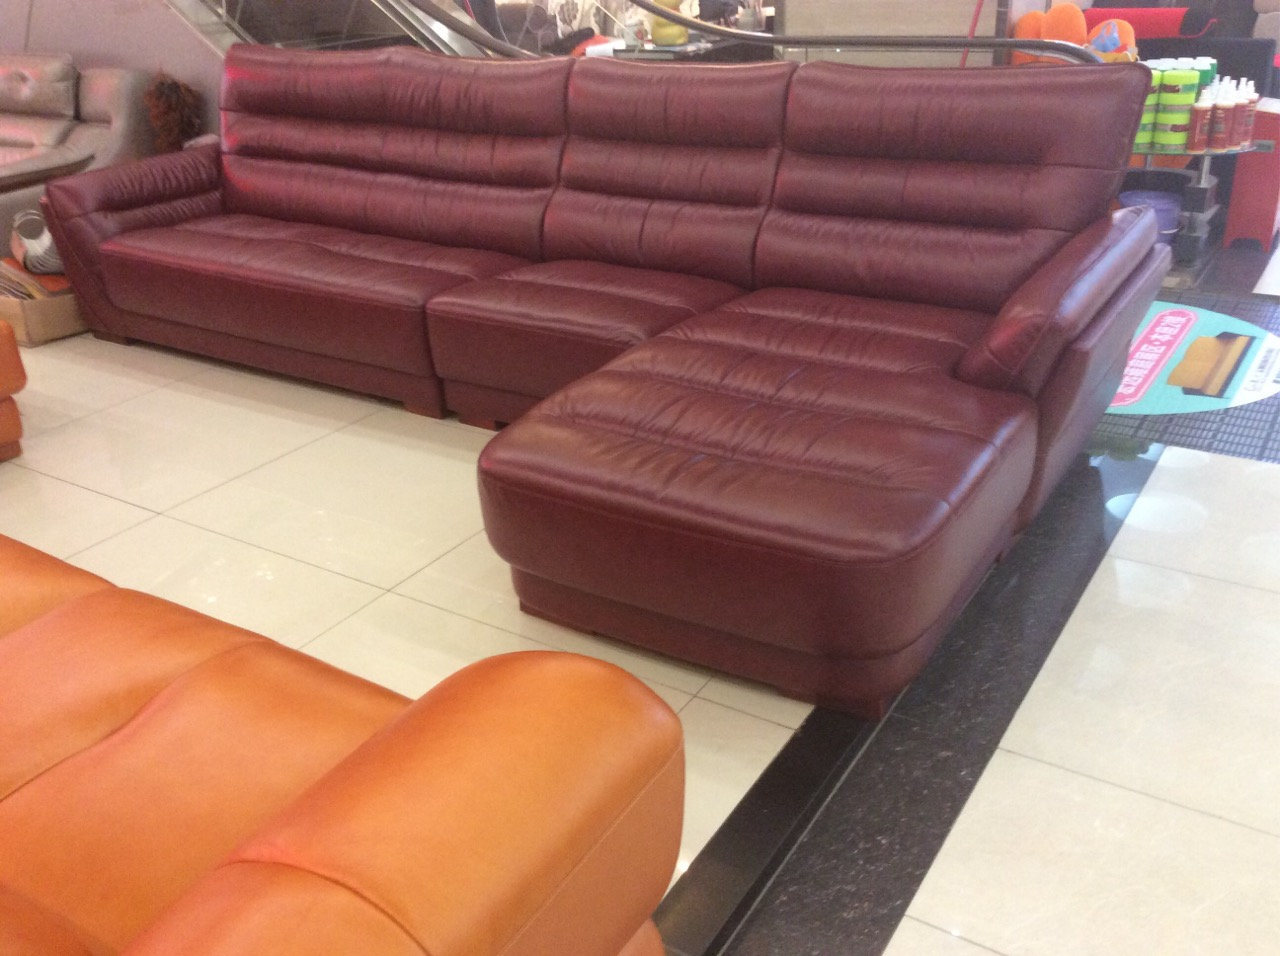 Enjoyable China Red Wine Color Leather Sofa Living Room Furniture A Uwap Interior Chair Design Uwaporg